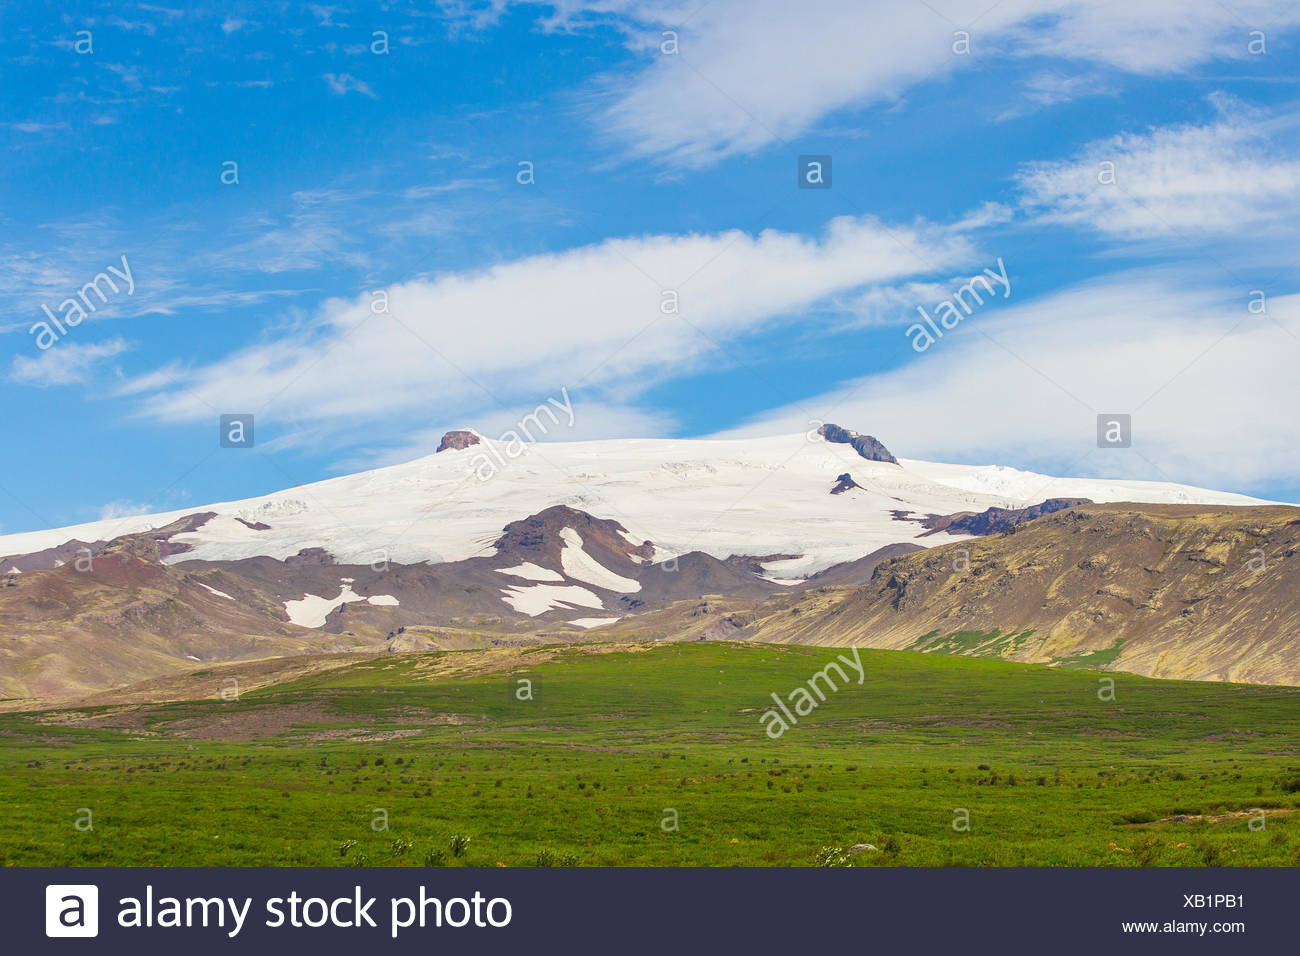 Snow-capped mountains and lush meadows on the south coast of Iceland. - Stock Image